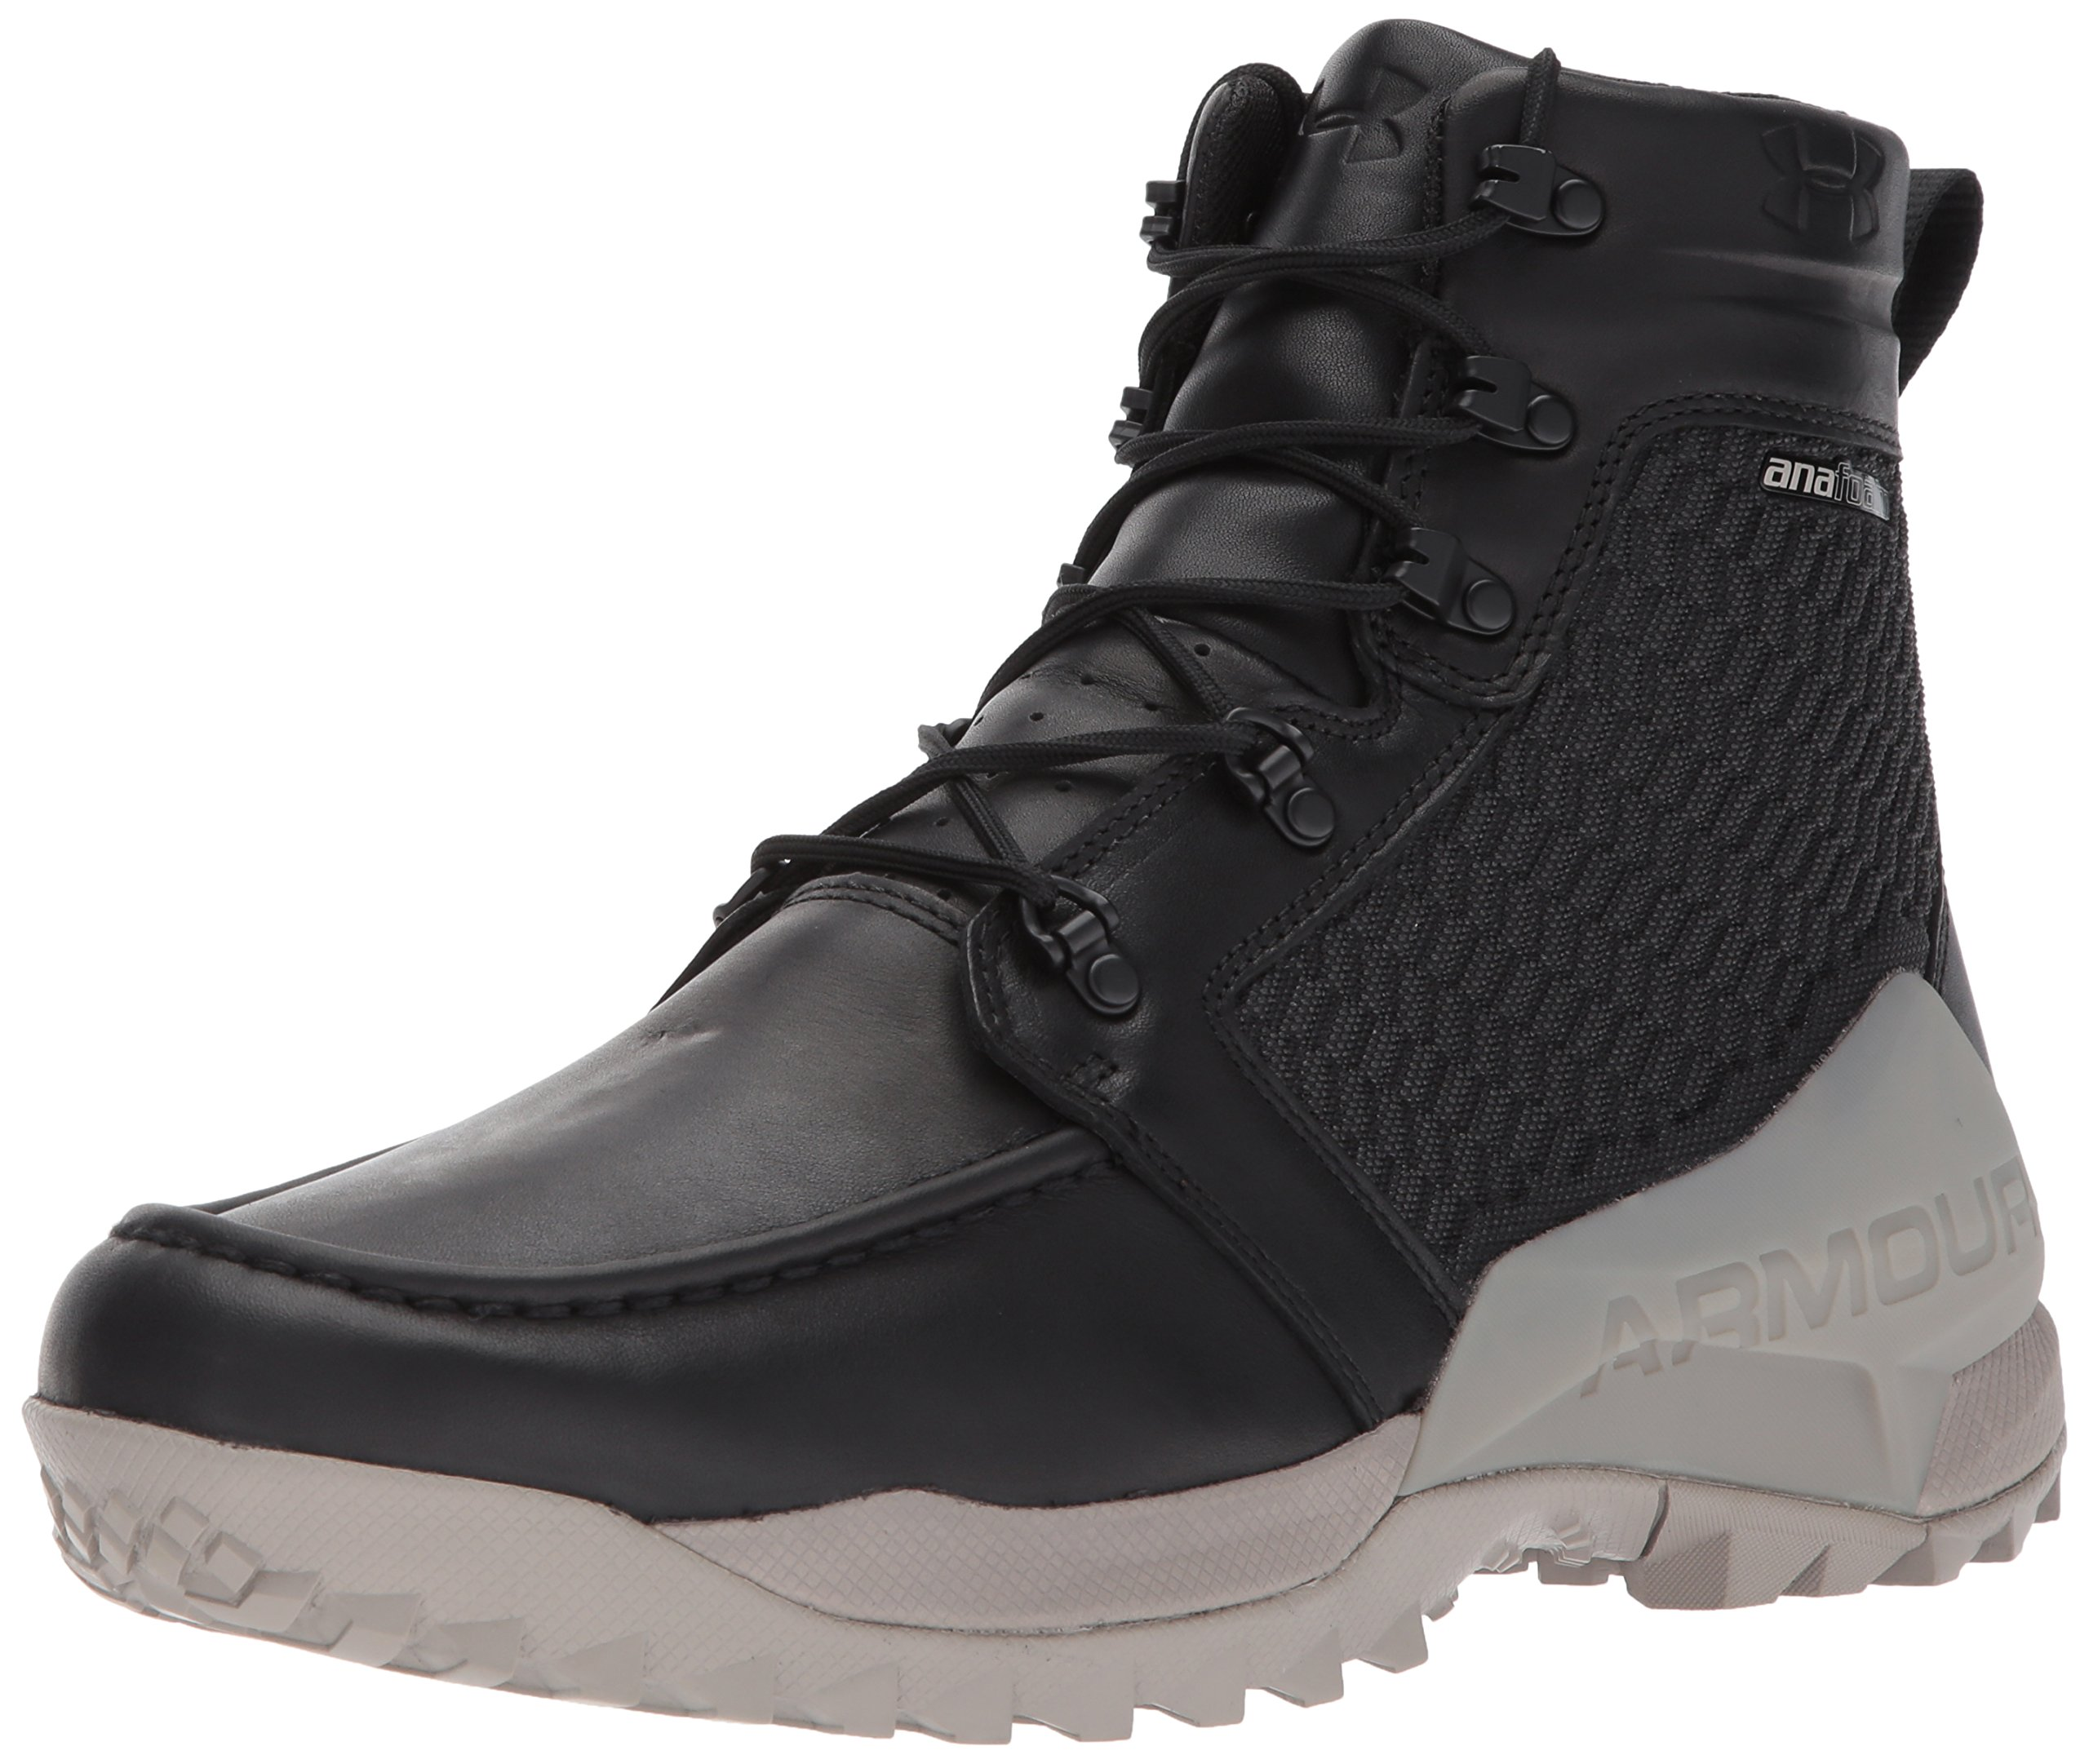 Under Armour Men's Field Ops Gore-Tex Ankle Boot, Black (001)/Autumn Tan, 8.5